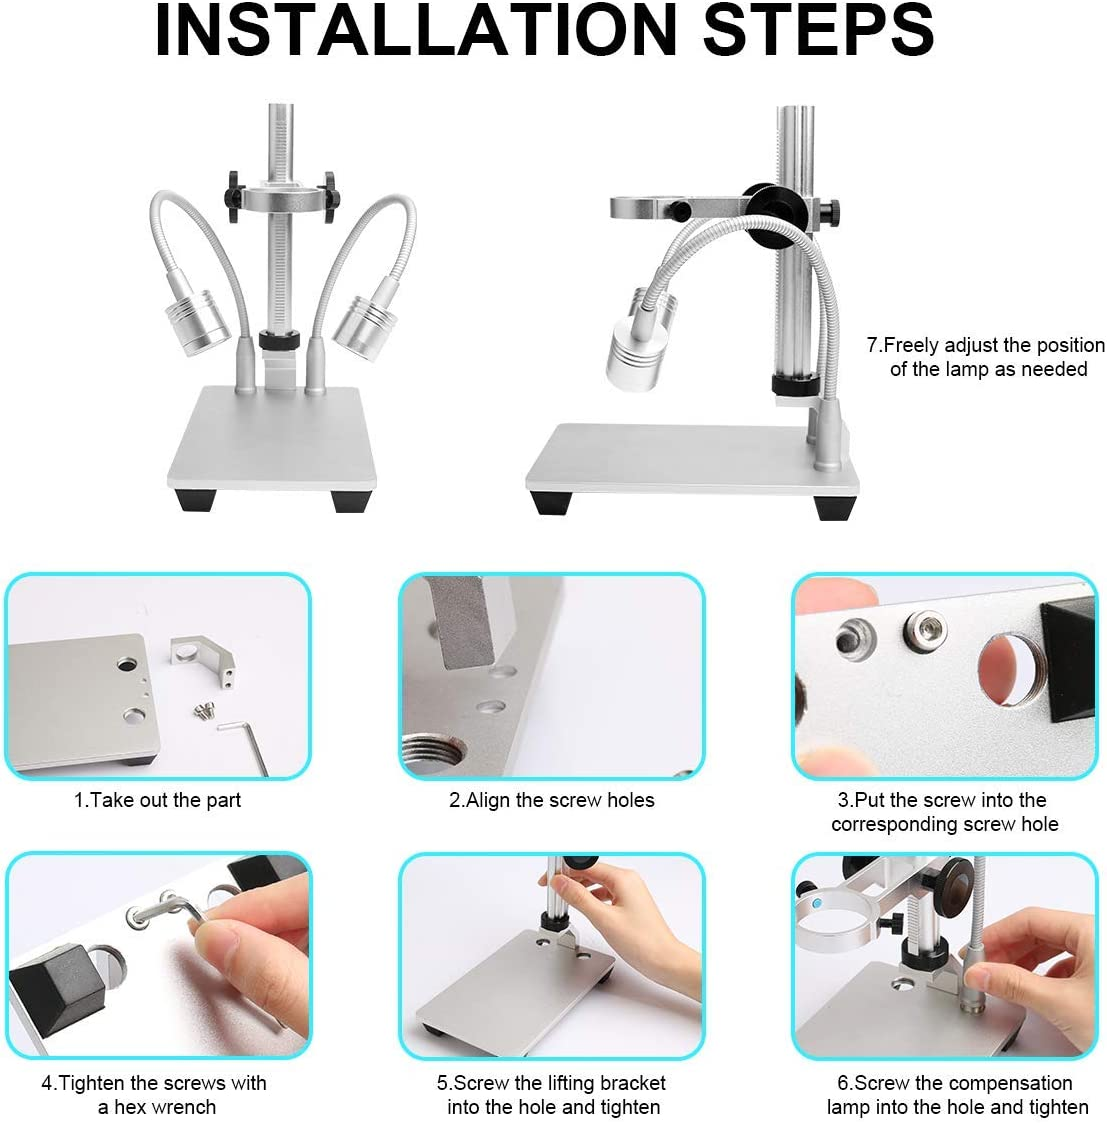 Aluminum Alloy Stand for USB Digital Microscope Camera Bysameyee Universal Adjustable Microscope Metal Stand Base Support Holder Bracket for Max 1.4 Inch in Diameter LCD Screen Microscope Endoscope